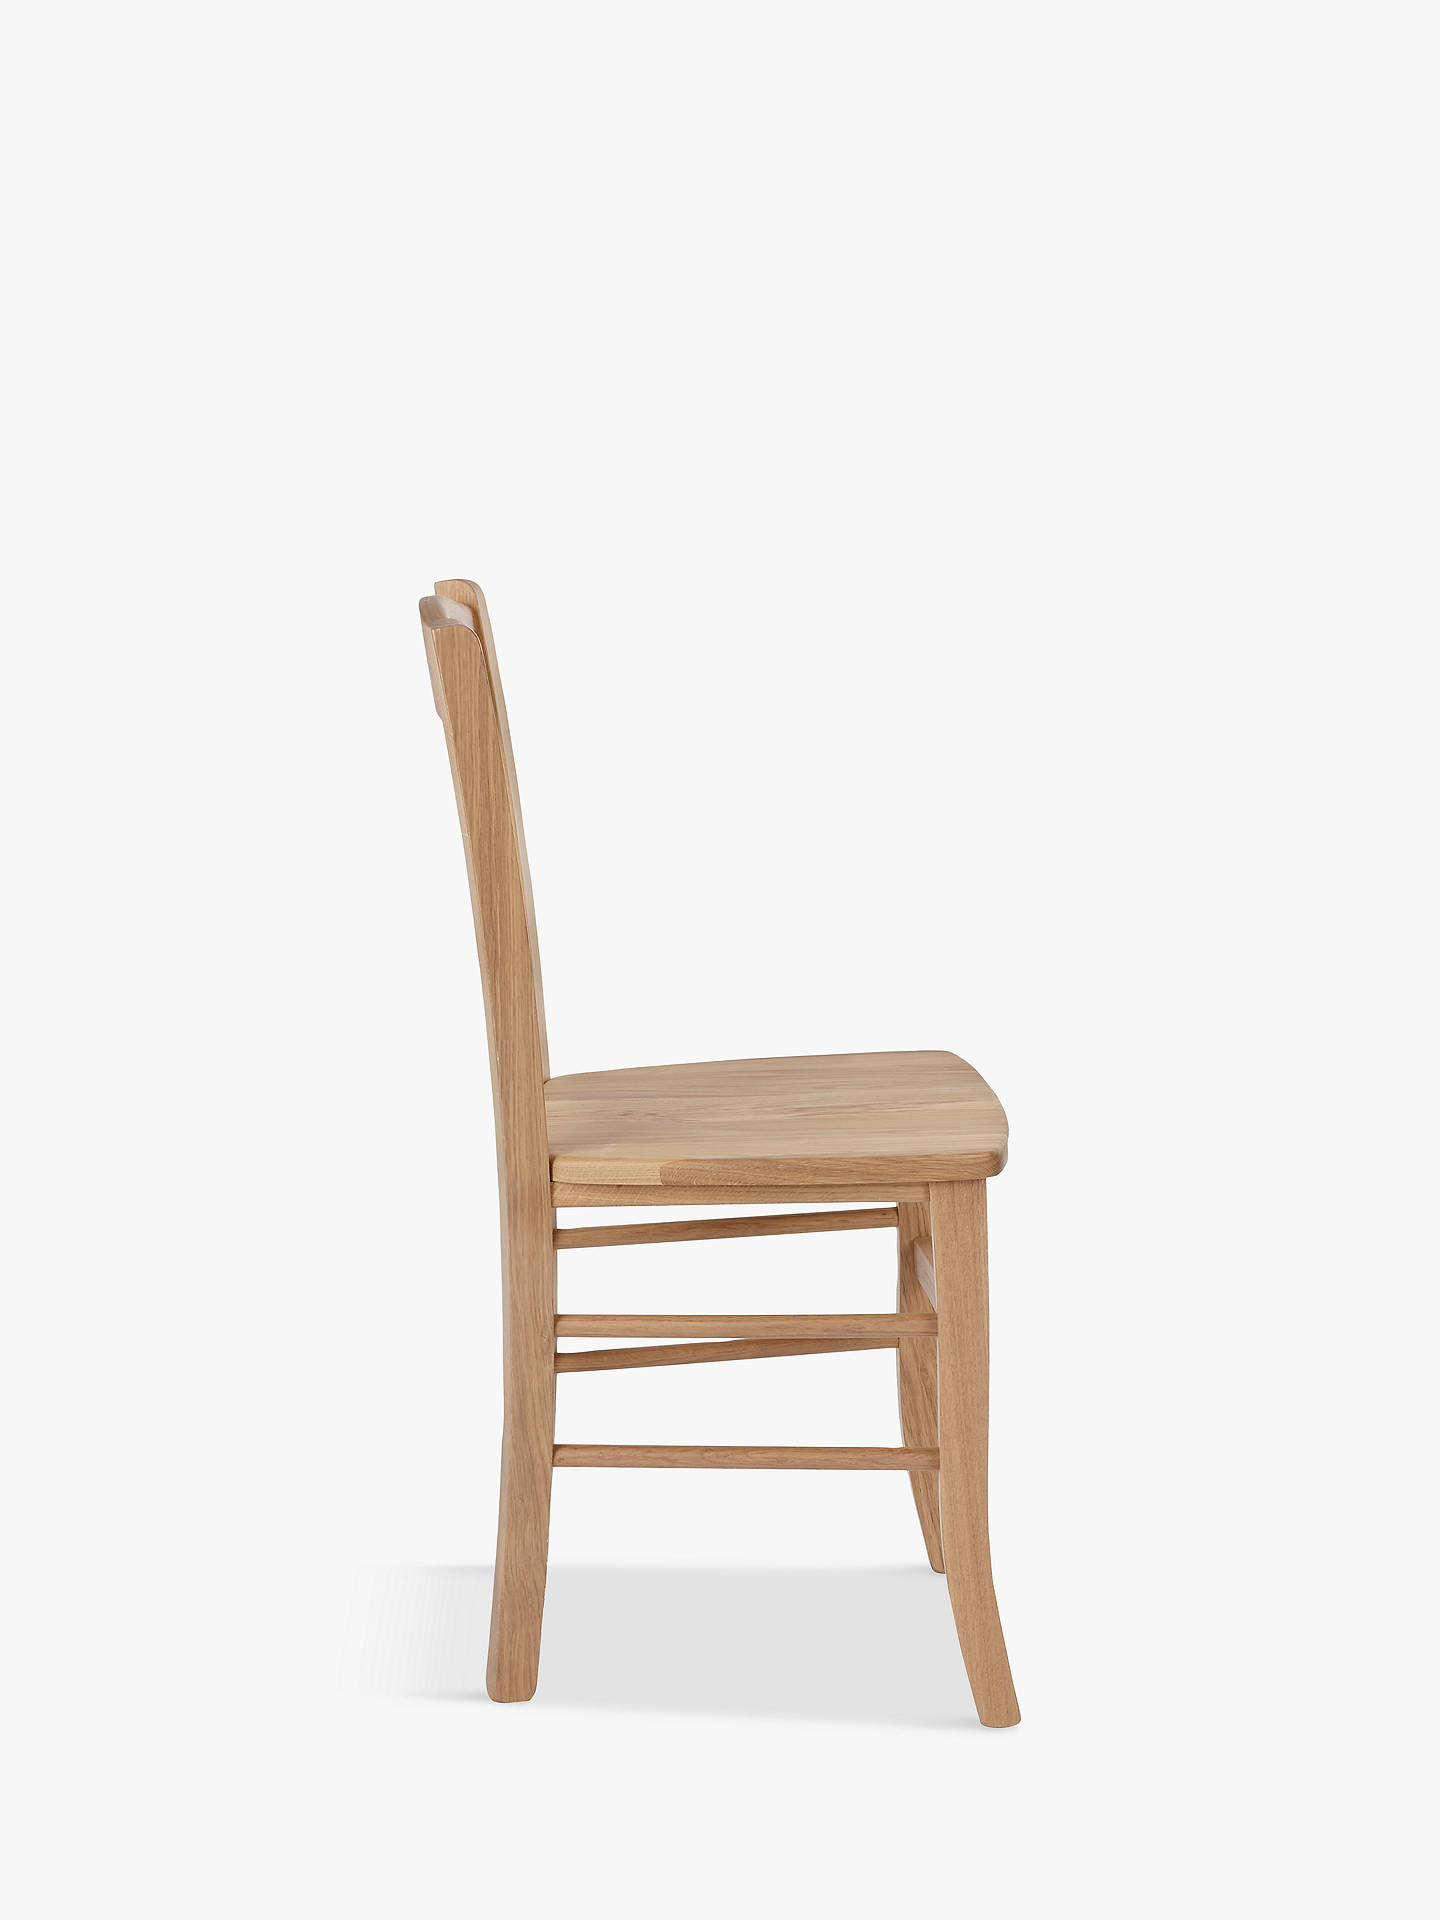 Surprising John Lewis Partners Clayton Dining Chairs Set Of 2 Fsc Certified Oak Andrewgaddart Wooden Chair Designs For Living Room Andrewgaddartcom